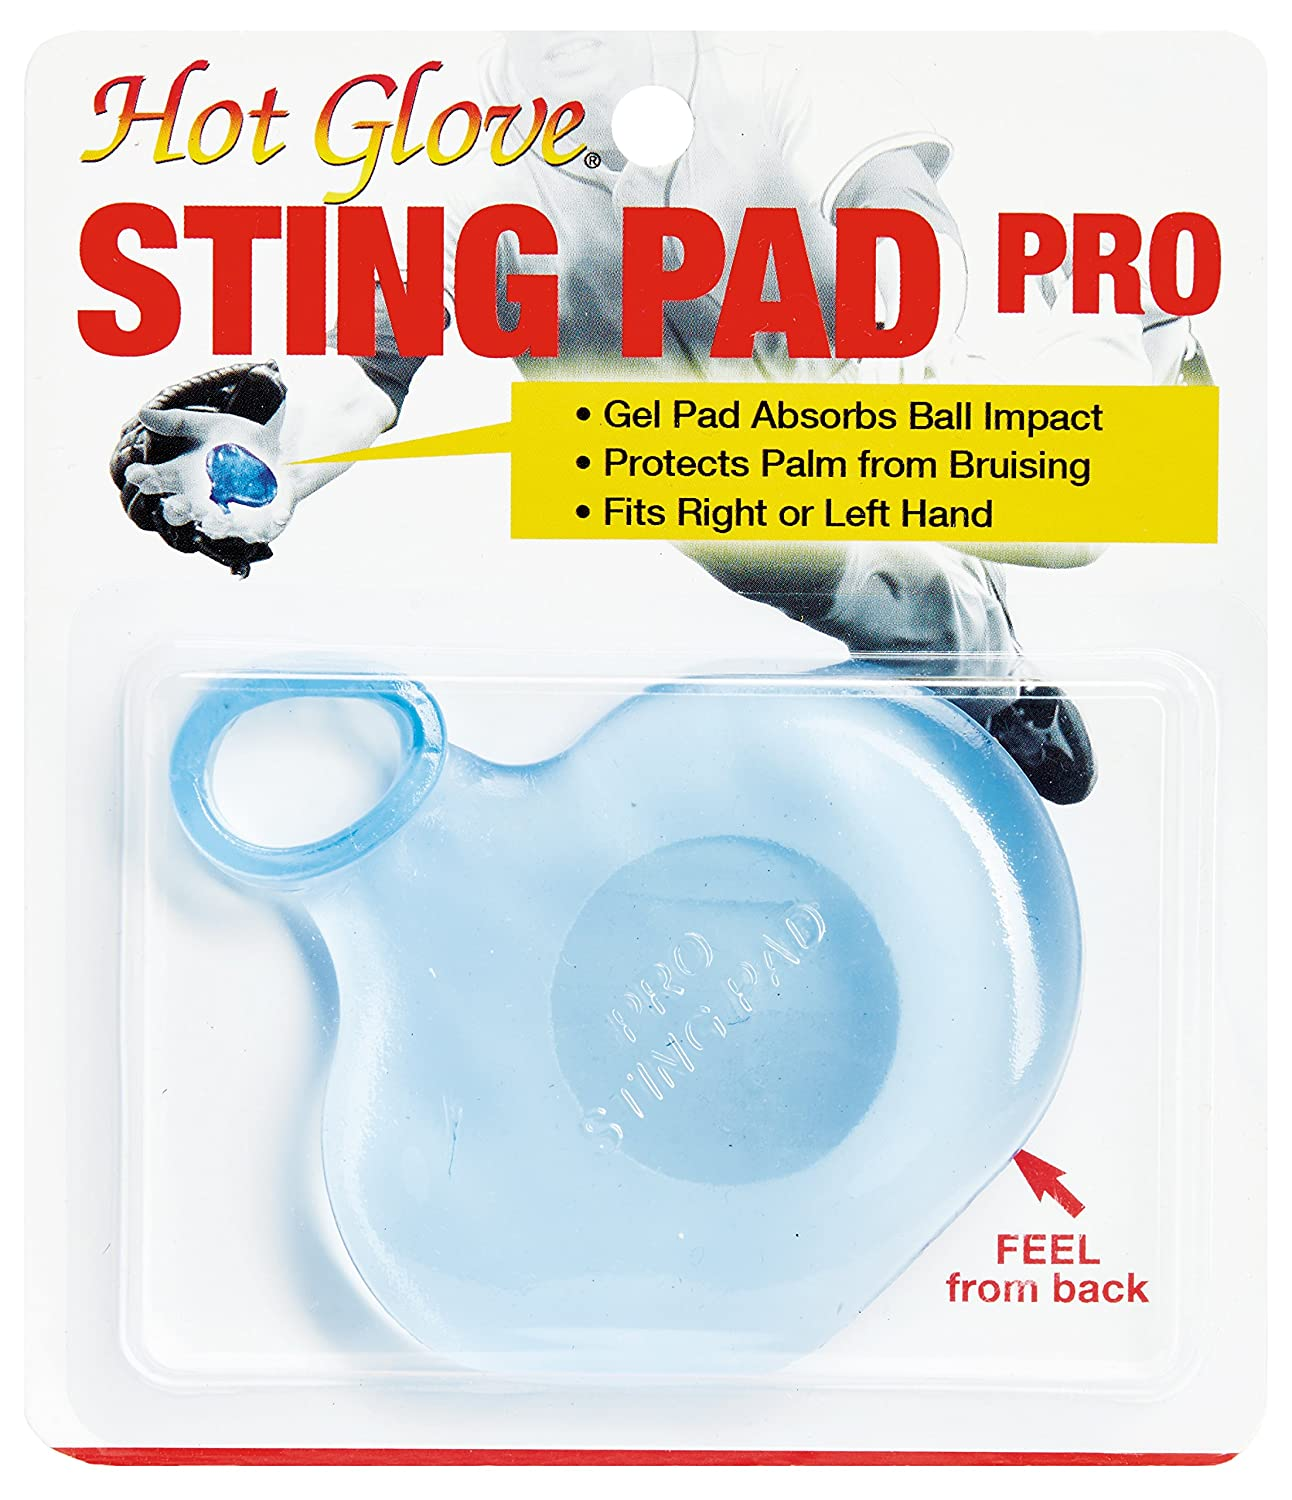 Hot Gant Sting Pad Pro Hot Glove HSP-P